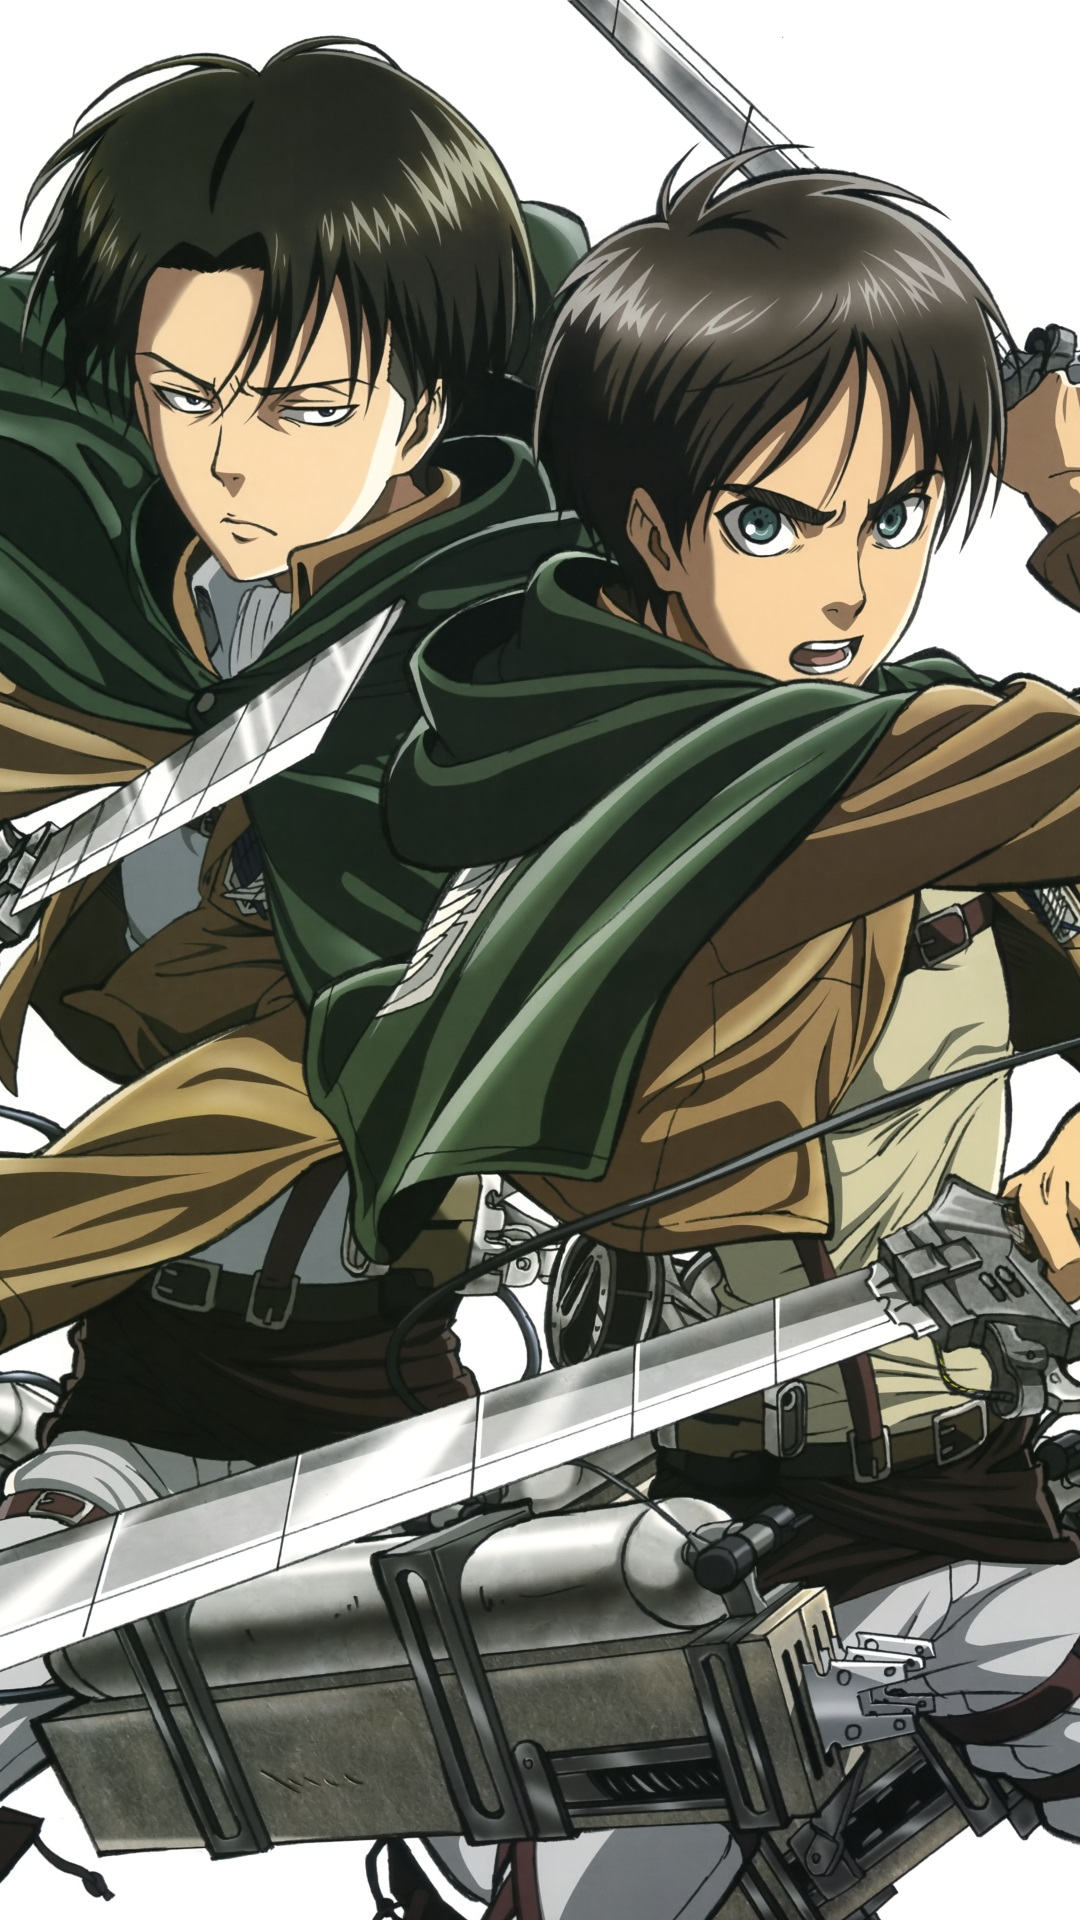 Shingeki No Kyojin Eren Jaeger Magic Thl W9 Wallpaper Levi Rivaille 1080 1920 Kawaii Mobile